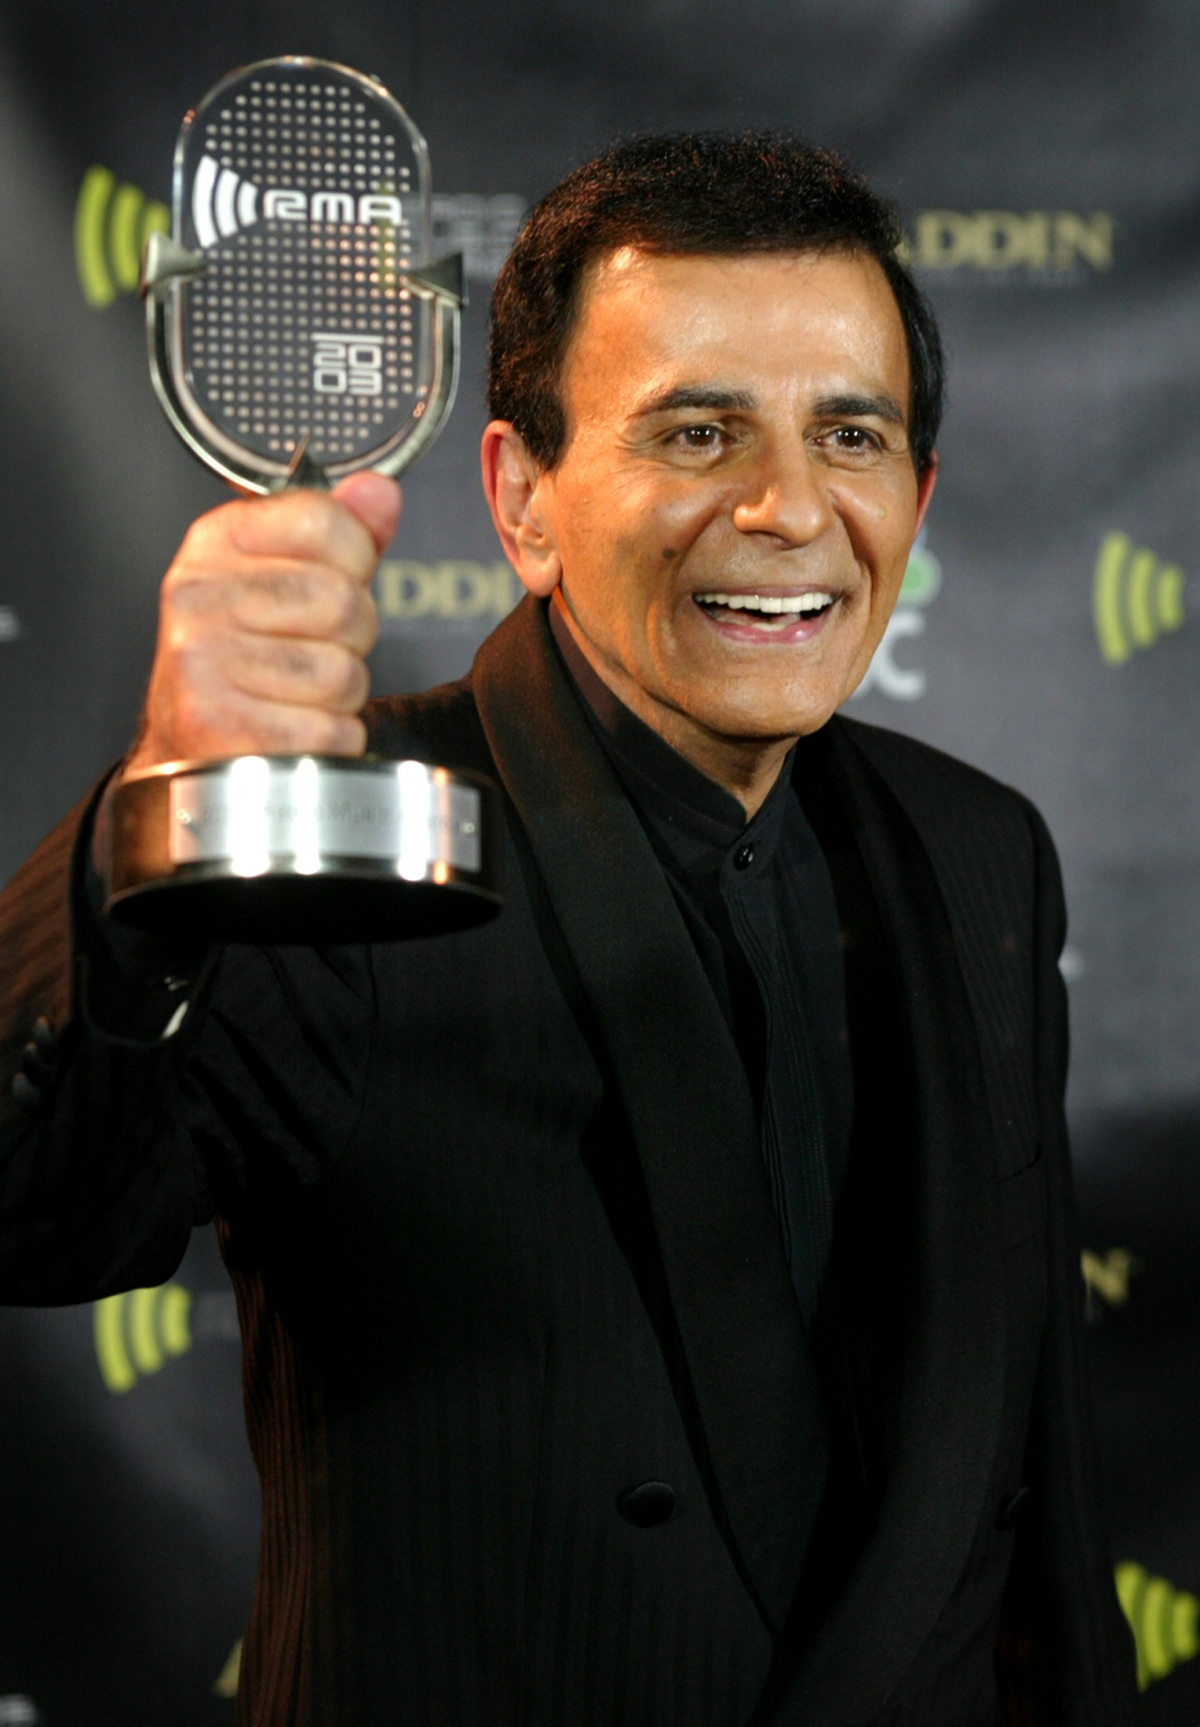 Casey Kasem Critical: Radio Legend